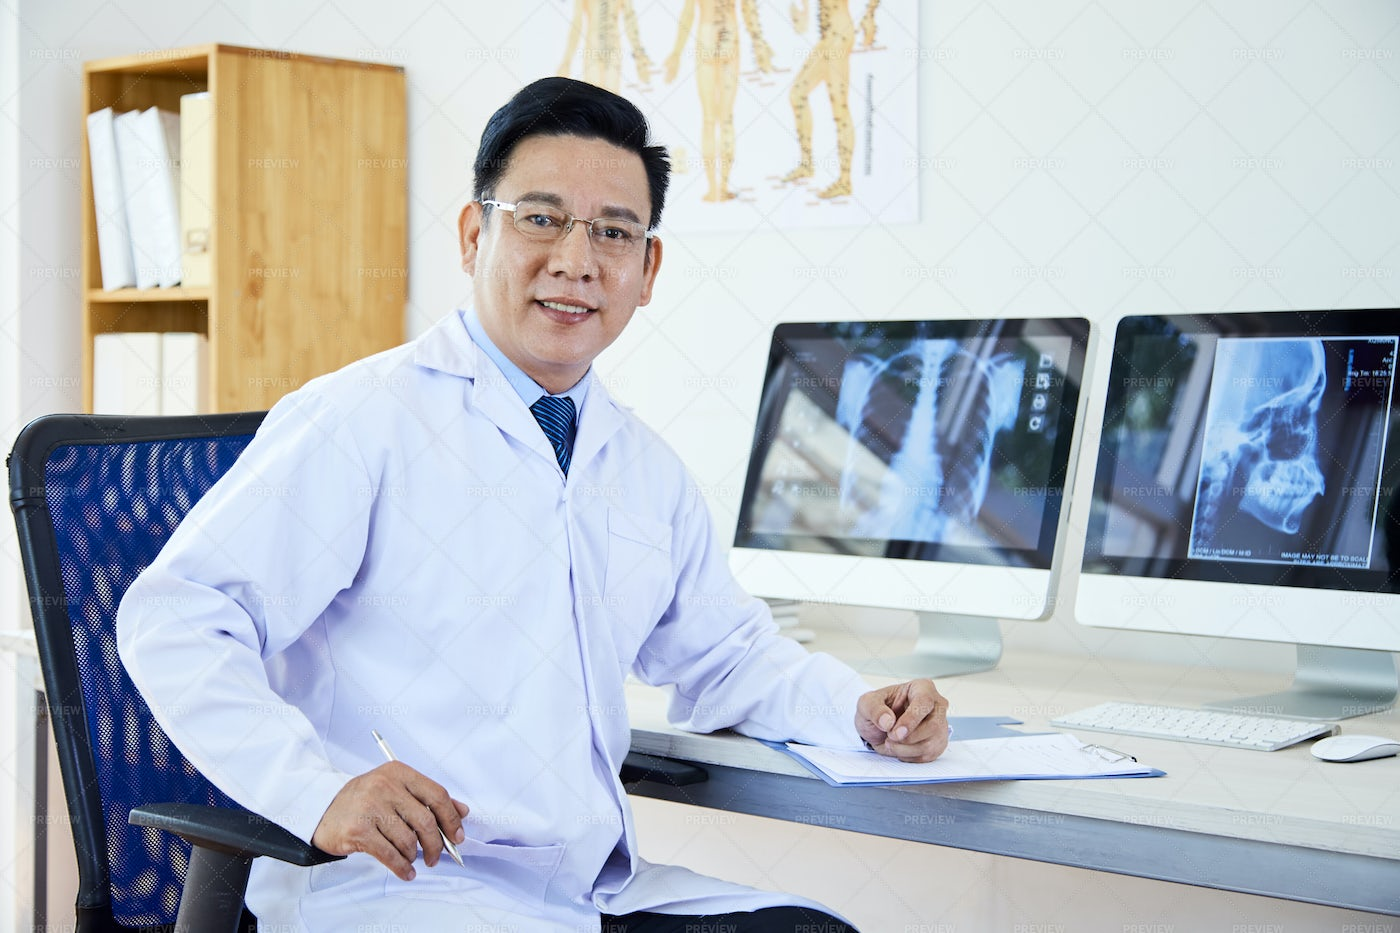 Asian Doctor Working At Office: Stock Photos